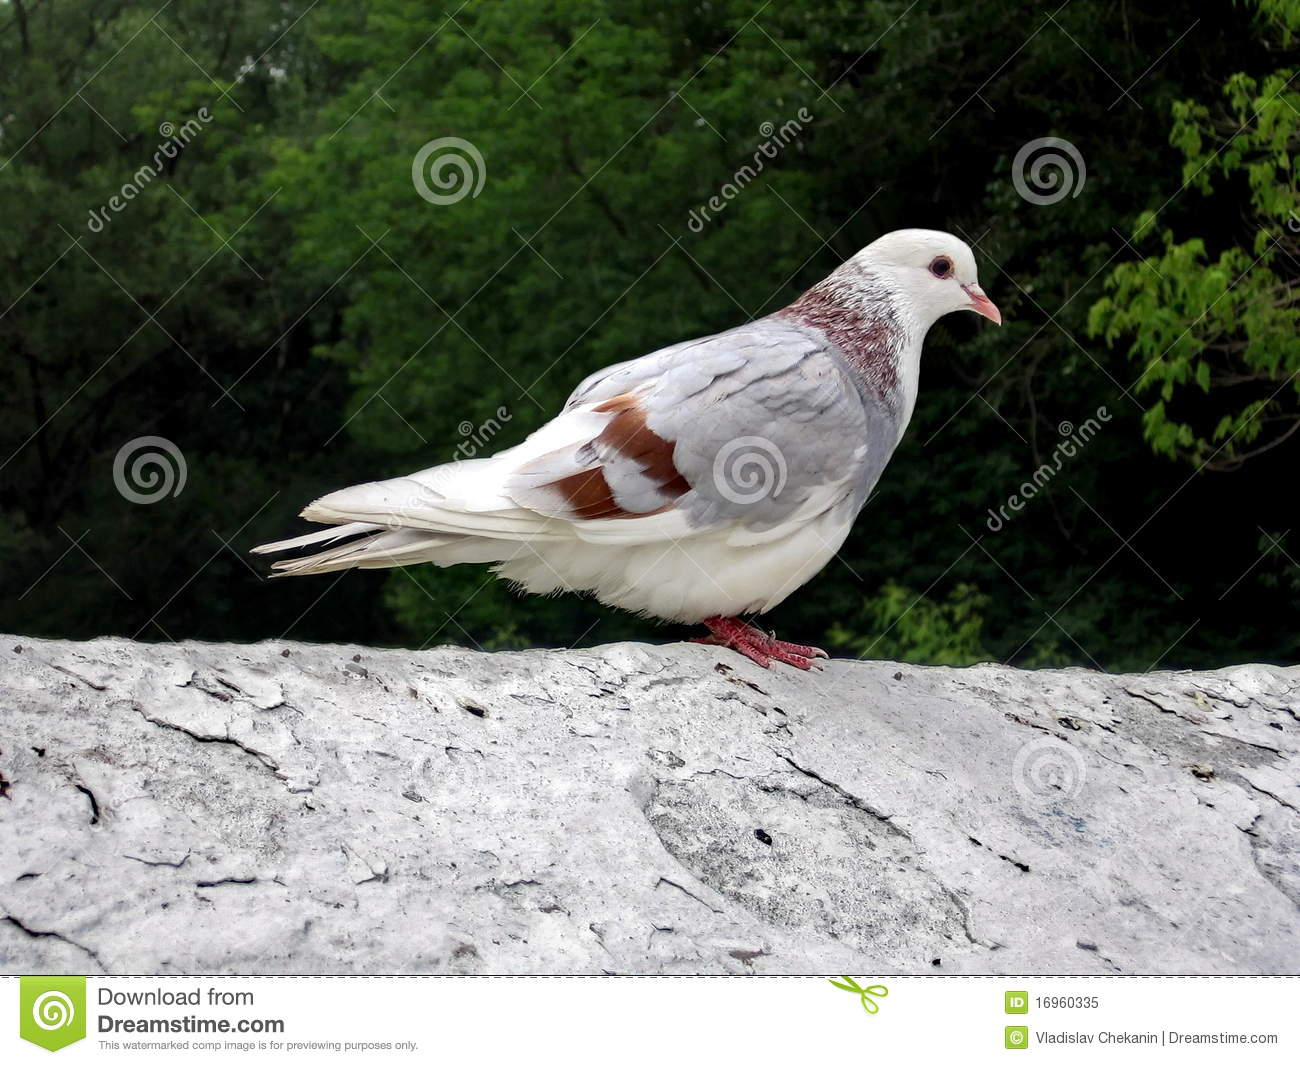 white pigeon singles Browse through available exotic pigeons for sale by  birds/data/photos/530944t/1515103837/brown-white--pigeon-for-salejpg bird  pairs some are singles.